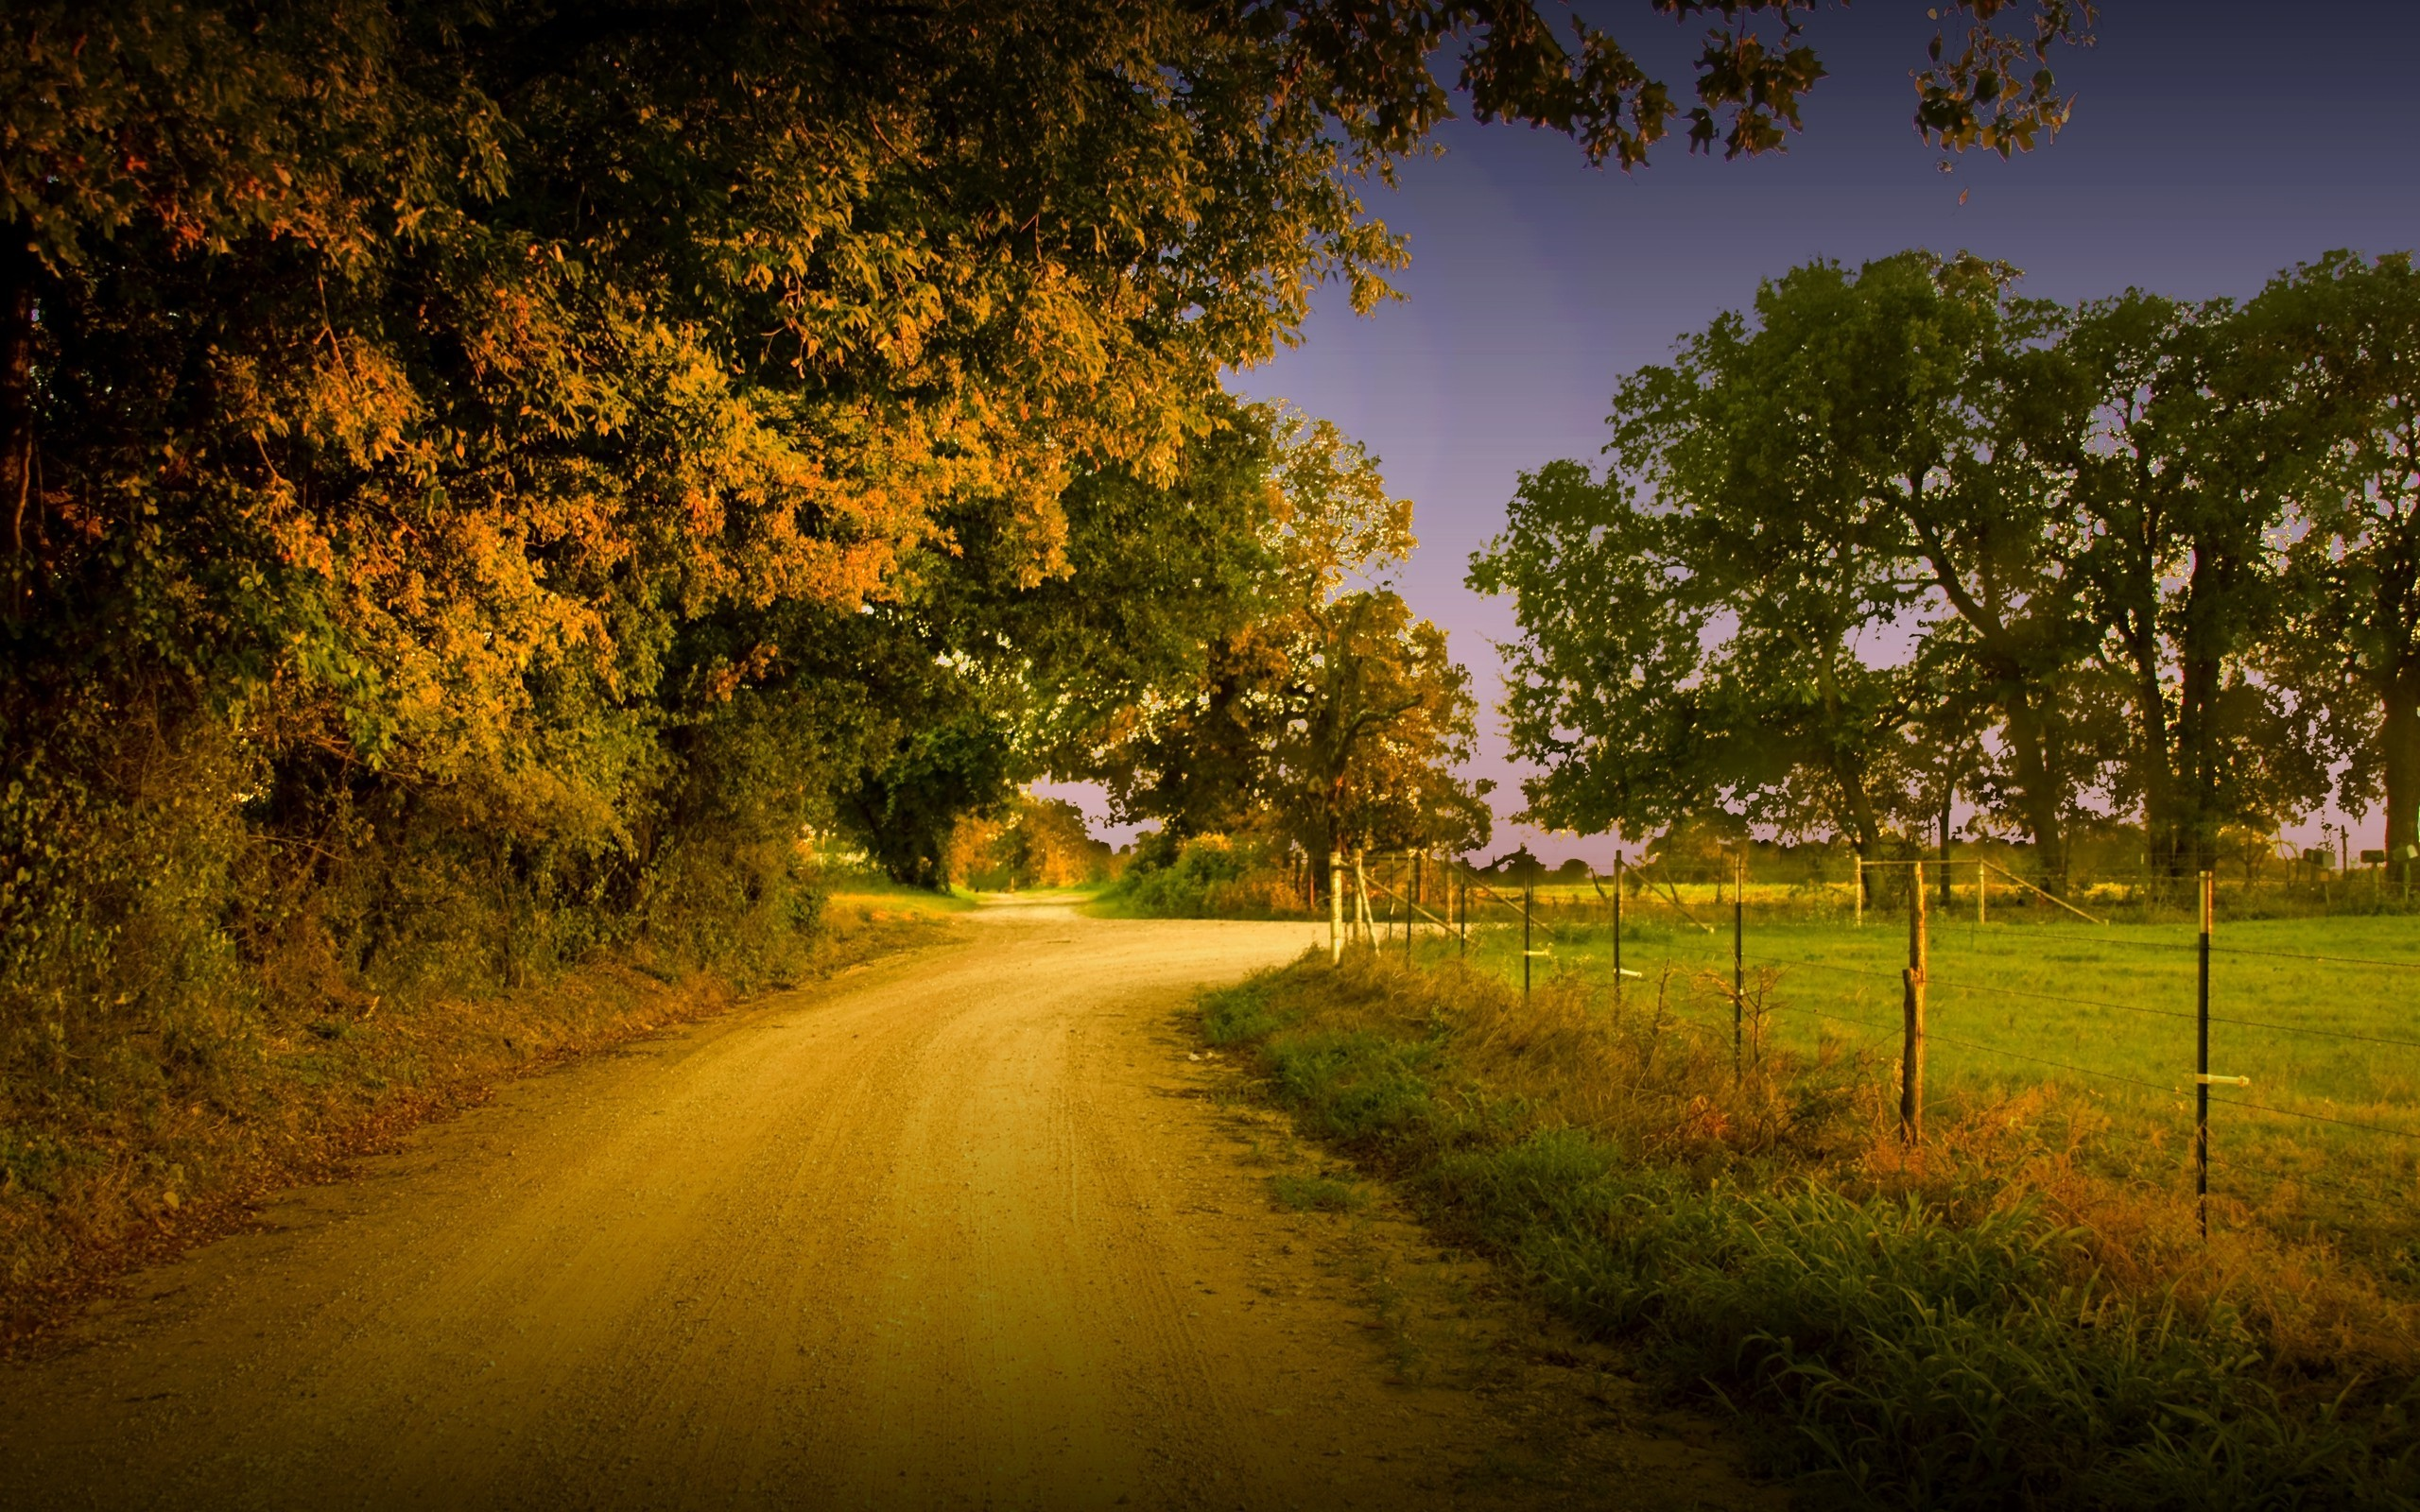 Country road wallpaper 14955 2560x1600